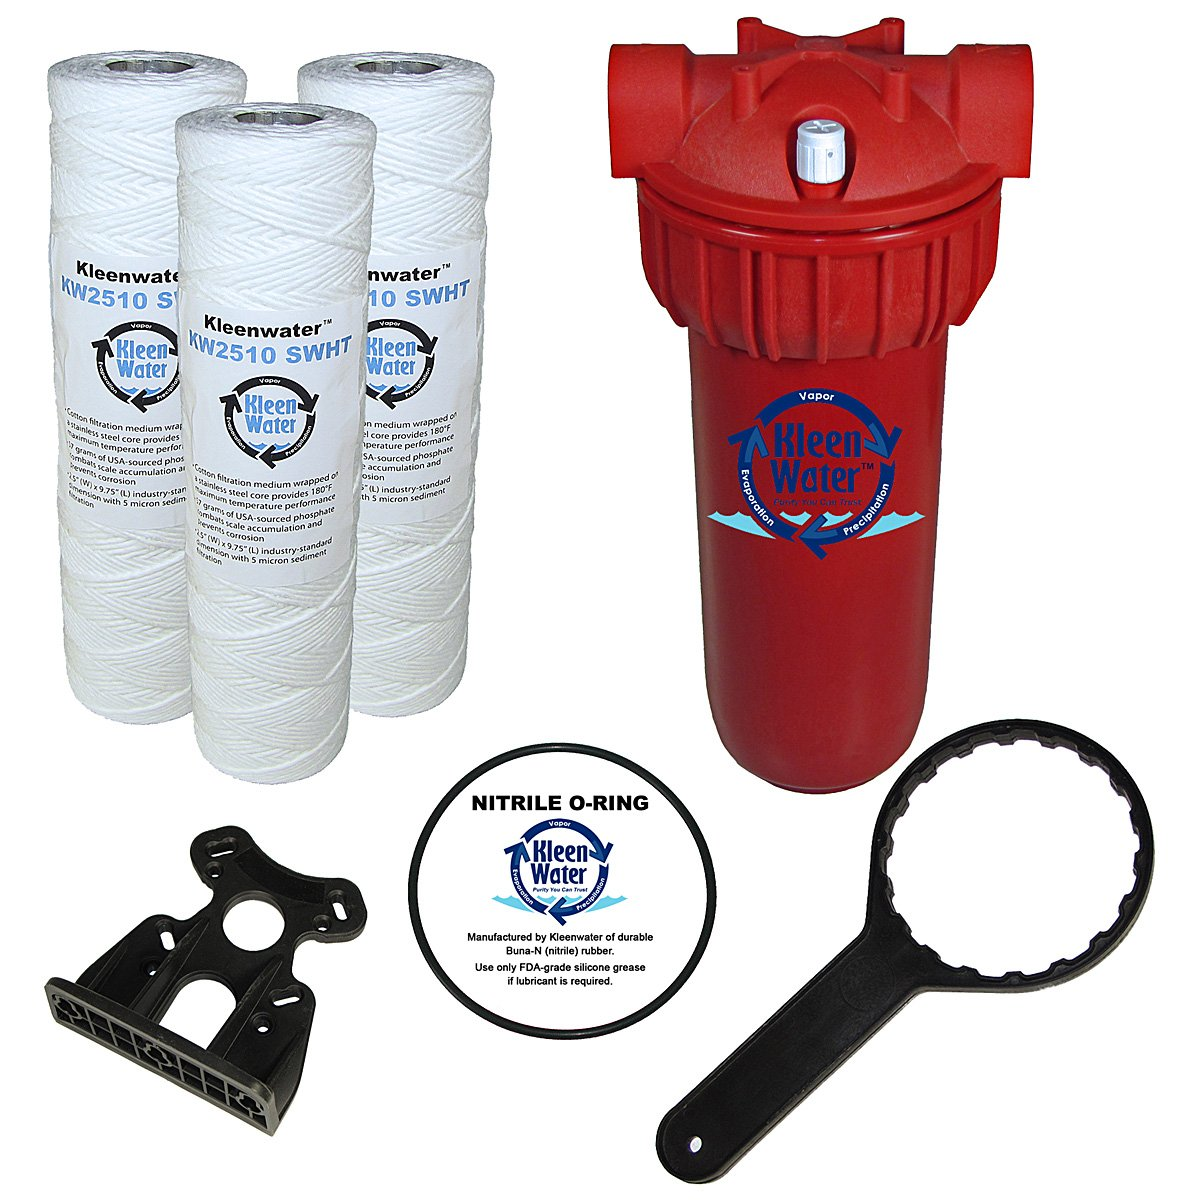 Hot Water Filter System, KleenWater Premier KWHW2510 High Temperature Filtration System with Scale Inhibitor Cartridges, 1 Inch Inlet Outlet